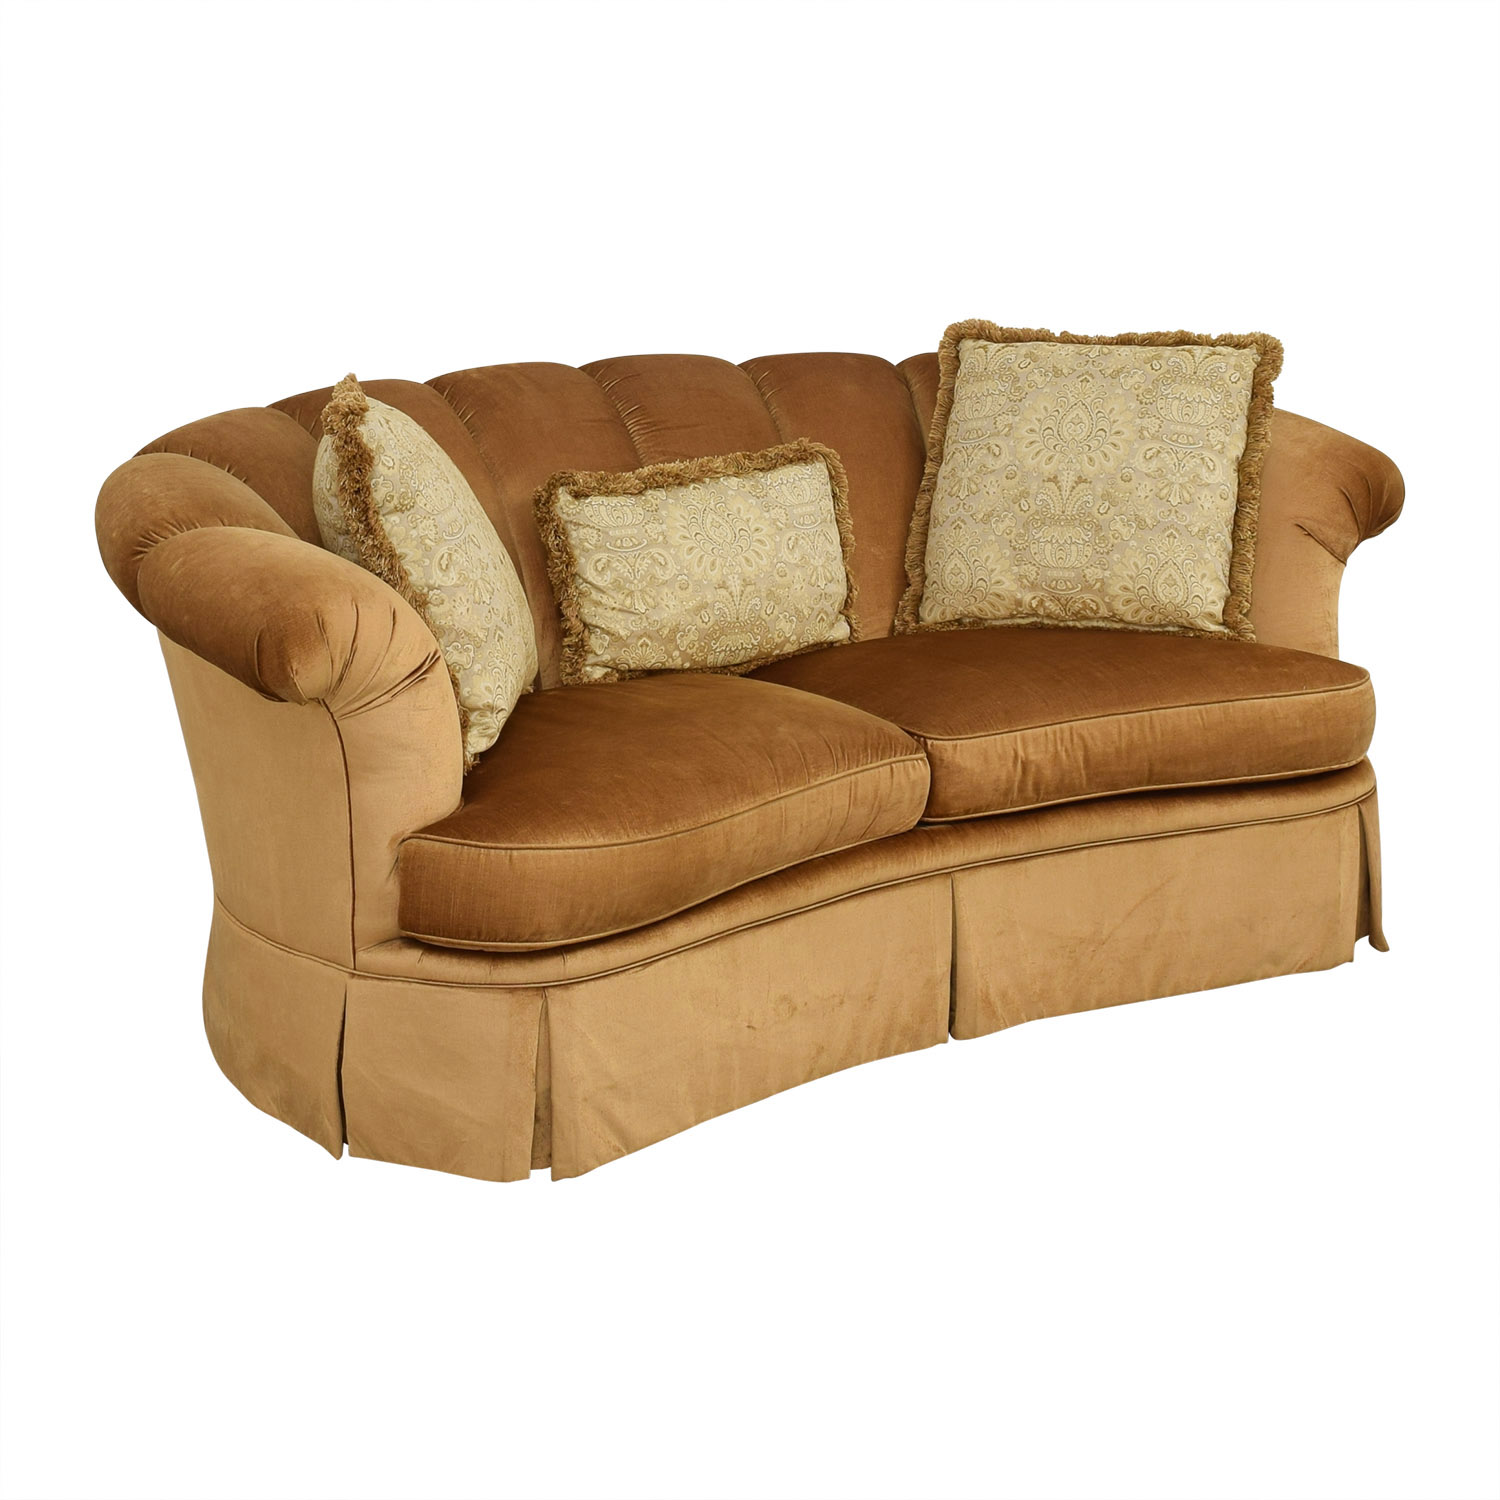 Highland House Furniture Highland House Scalloped Sofa ct